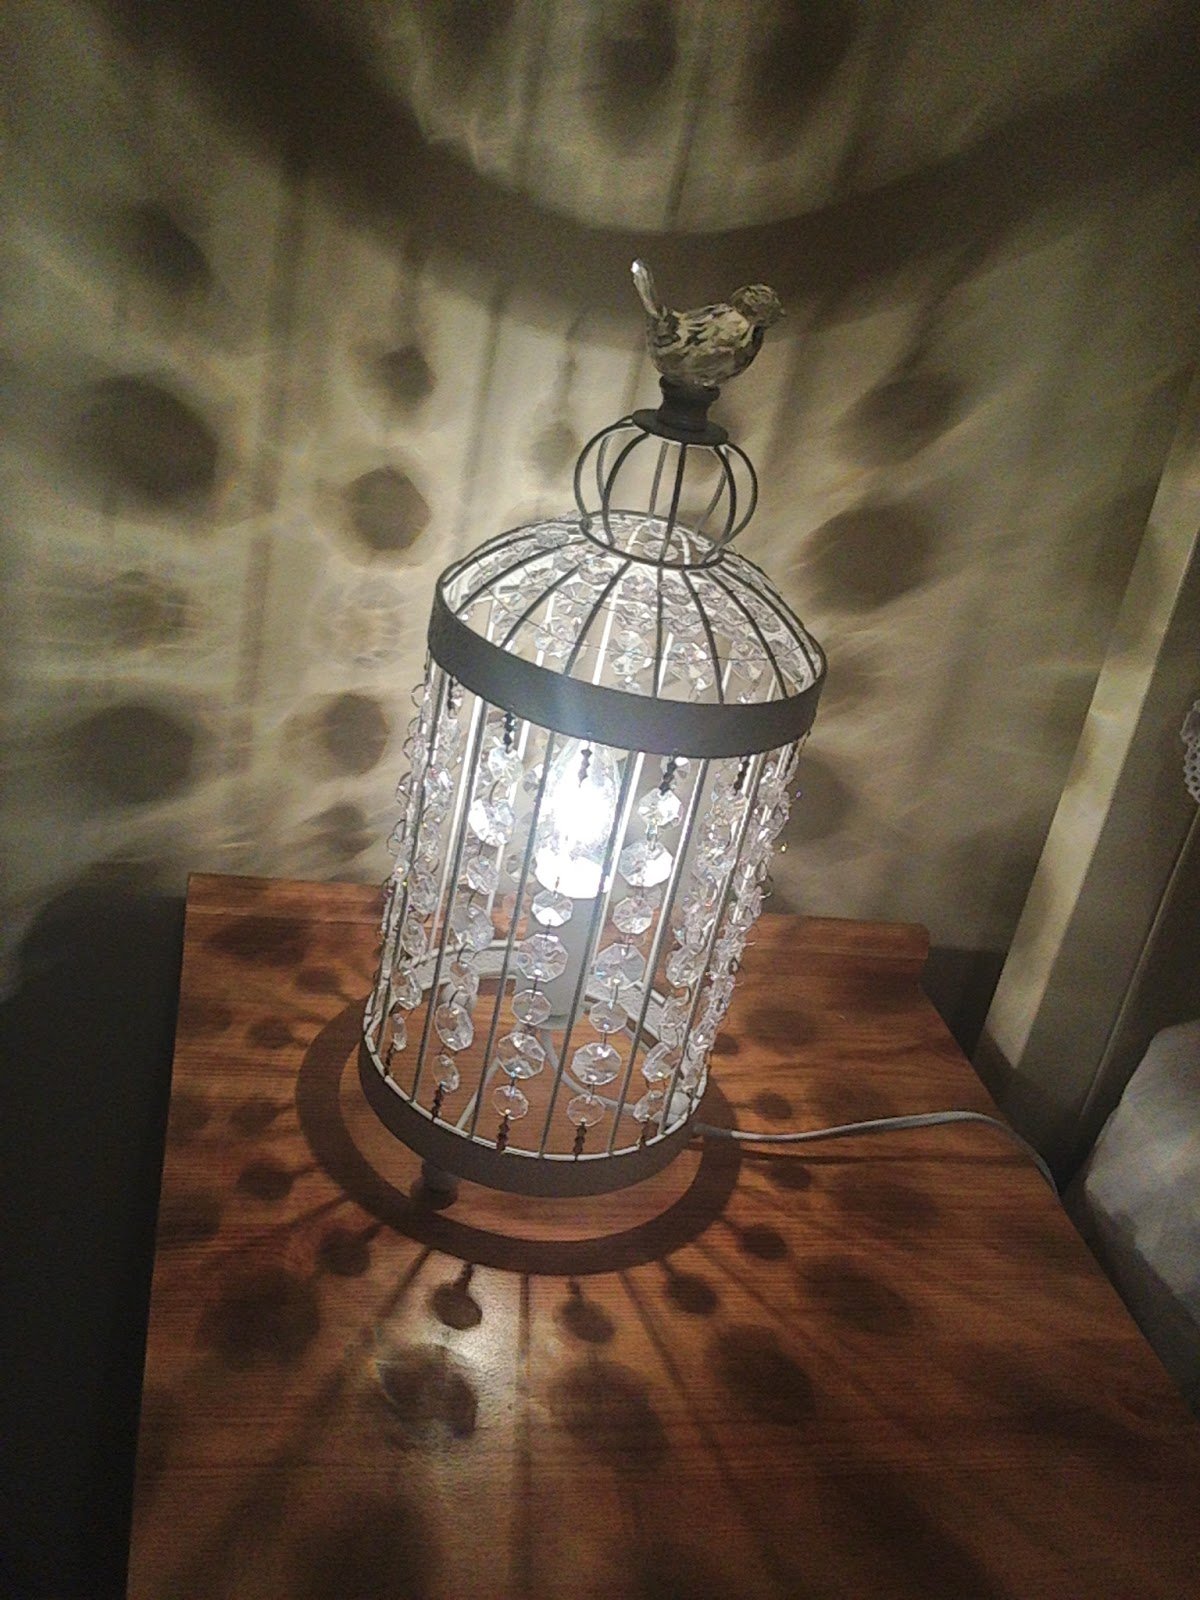 co lamps dandelion clocks lights lamp wine birdcage